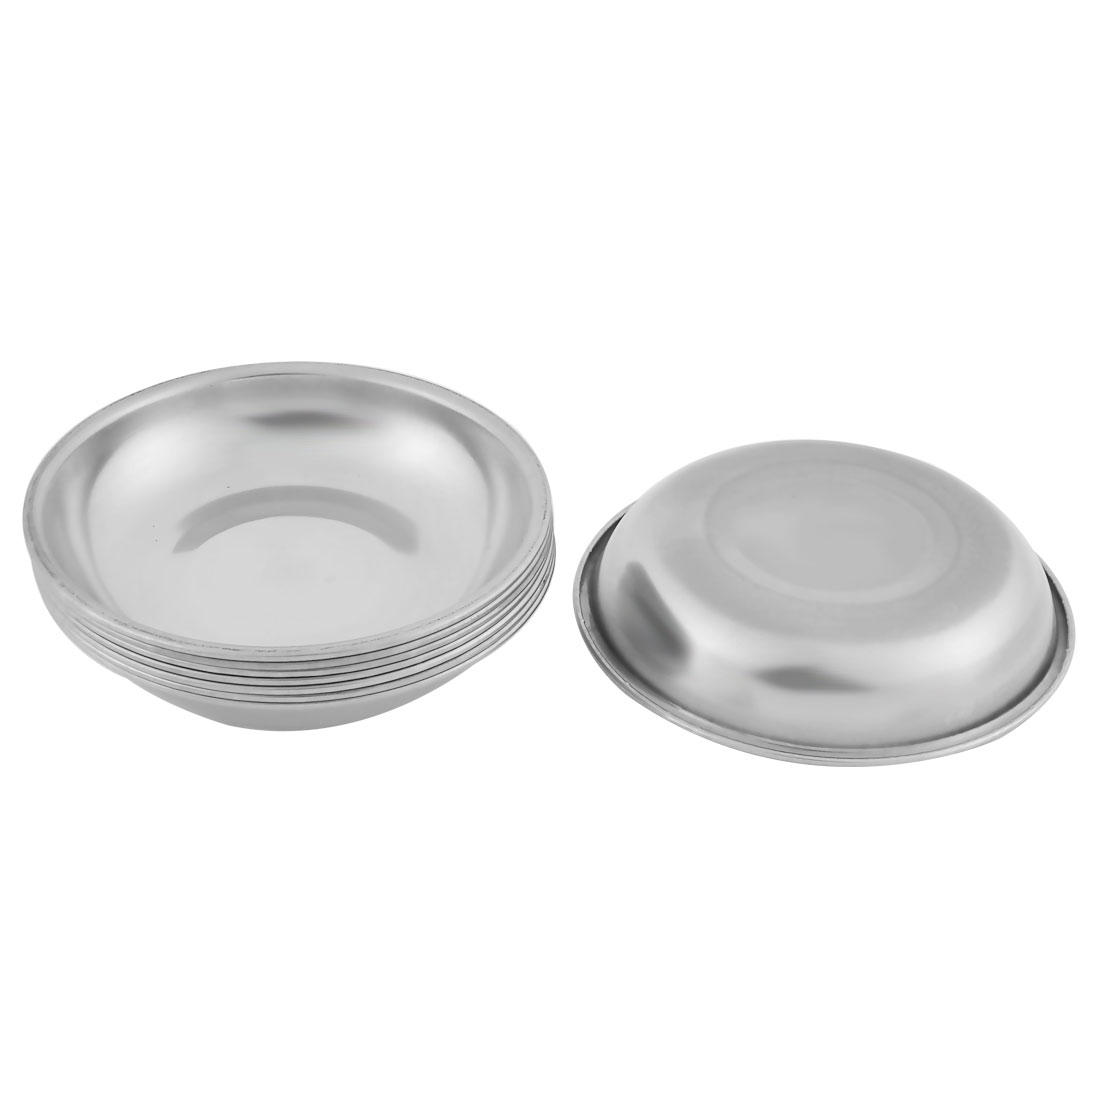 Household Metal Round Shaped Soy Sauce Spice Dish Silver Tone 10cm Diameter 8 Pcs